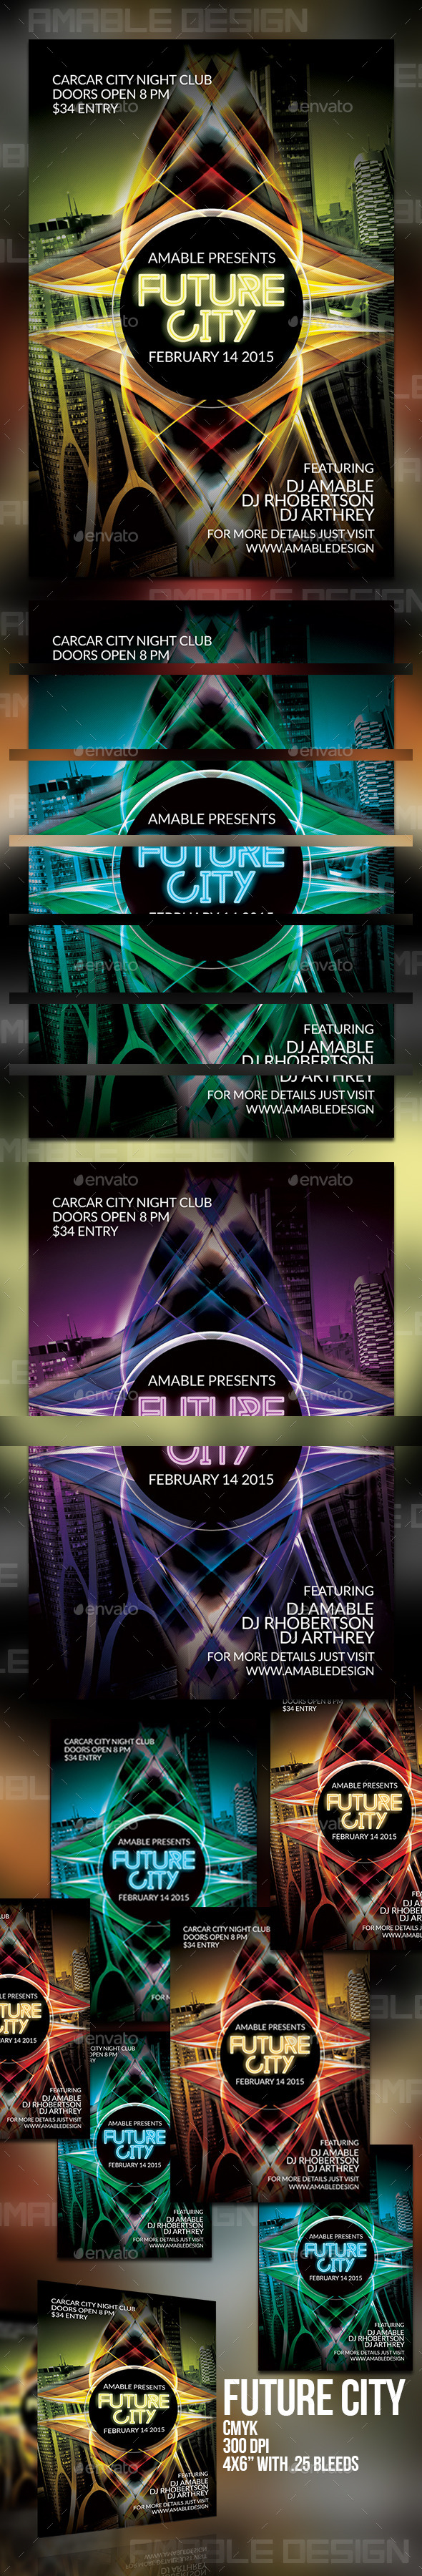 Future City Flyer - Clubs & Parties Events